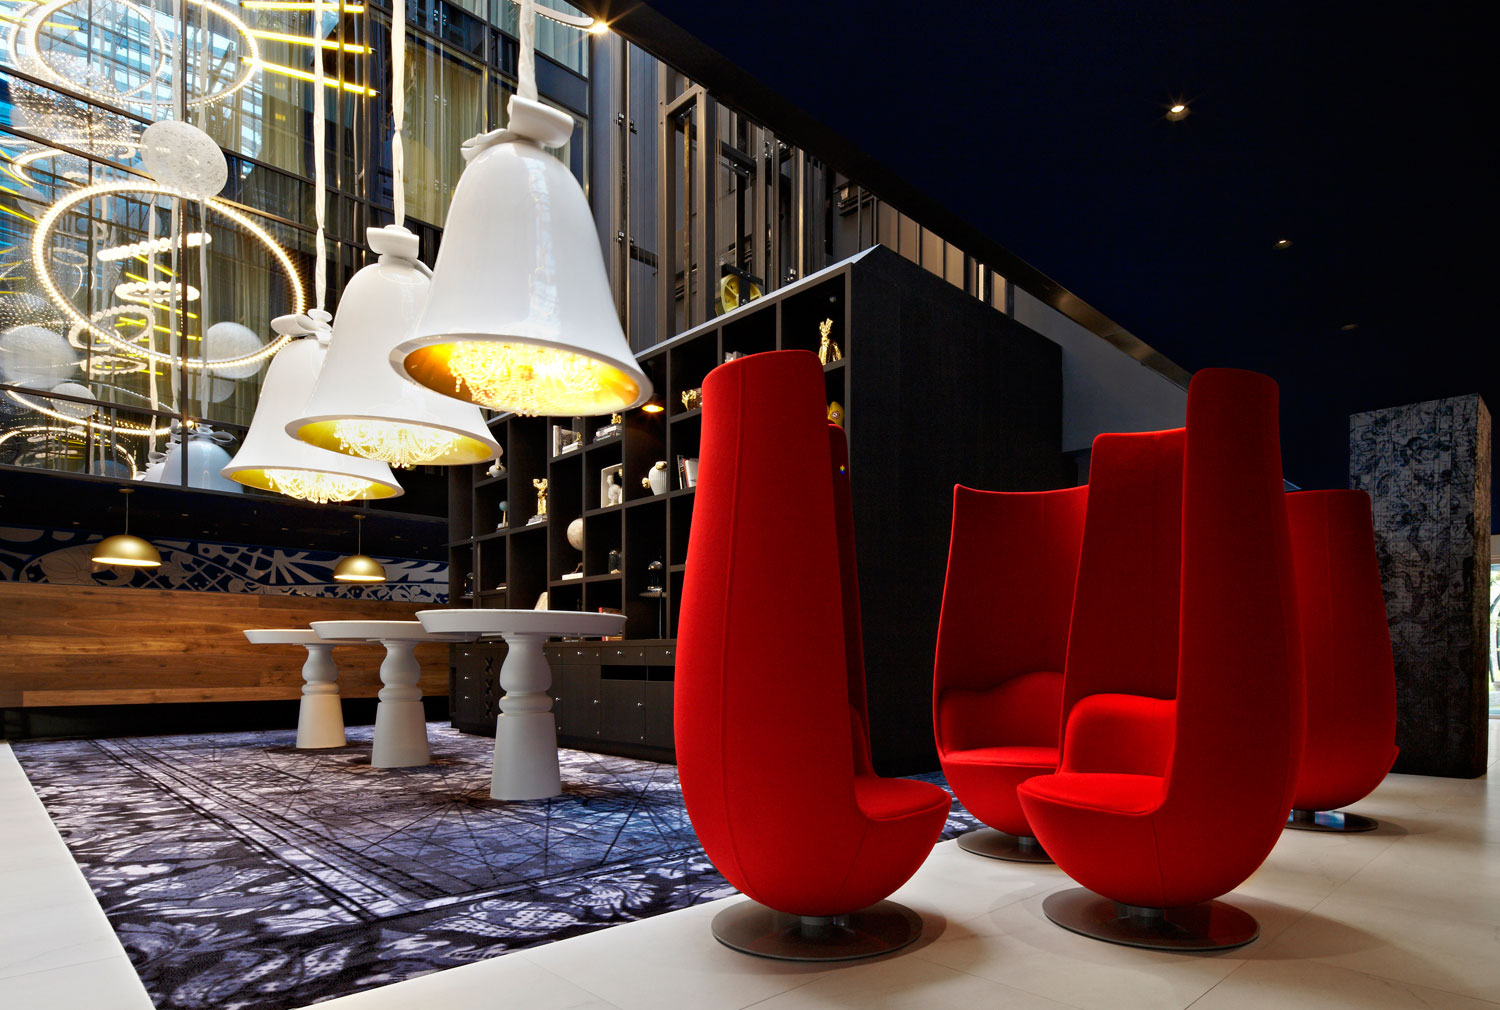 10 Luxury Interior Designs by Marcel Wanders interior design Best Interior Design: the work and legacy of Christian Liaigre cover3 interior design Best Interior Design: the work and legacy of Christian Liaigre cover3